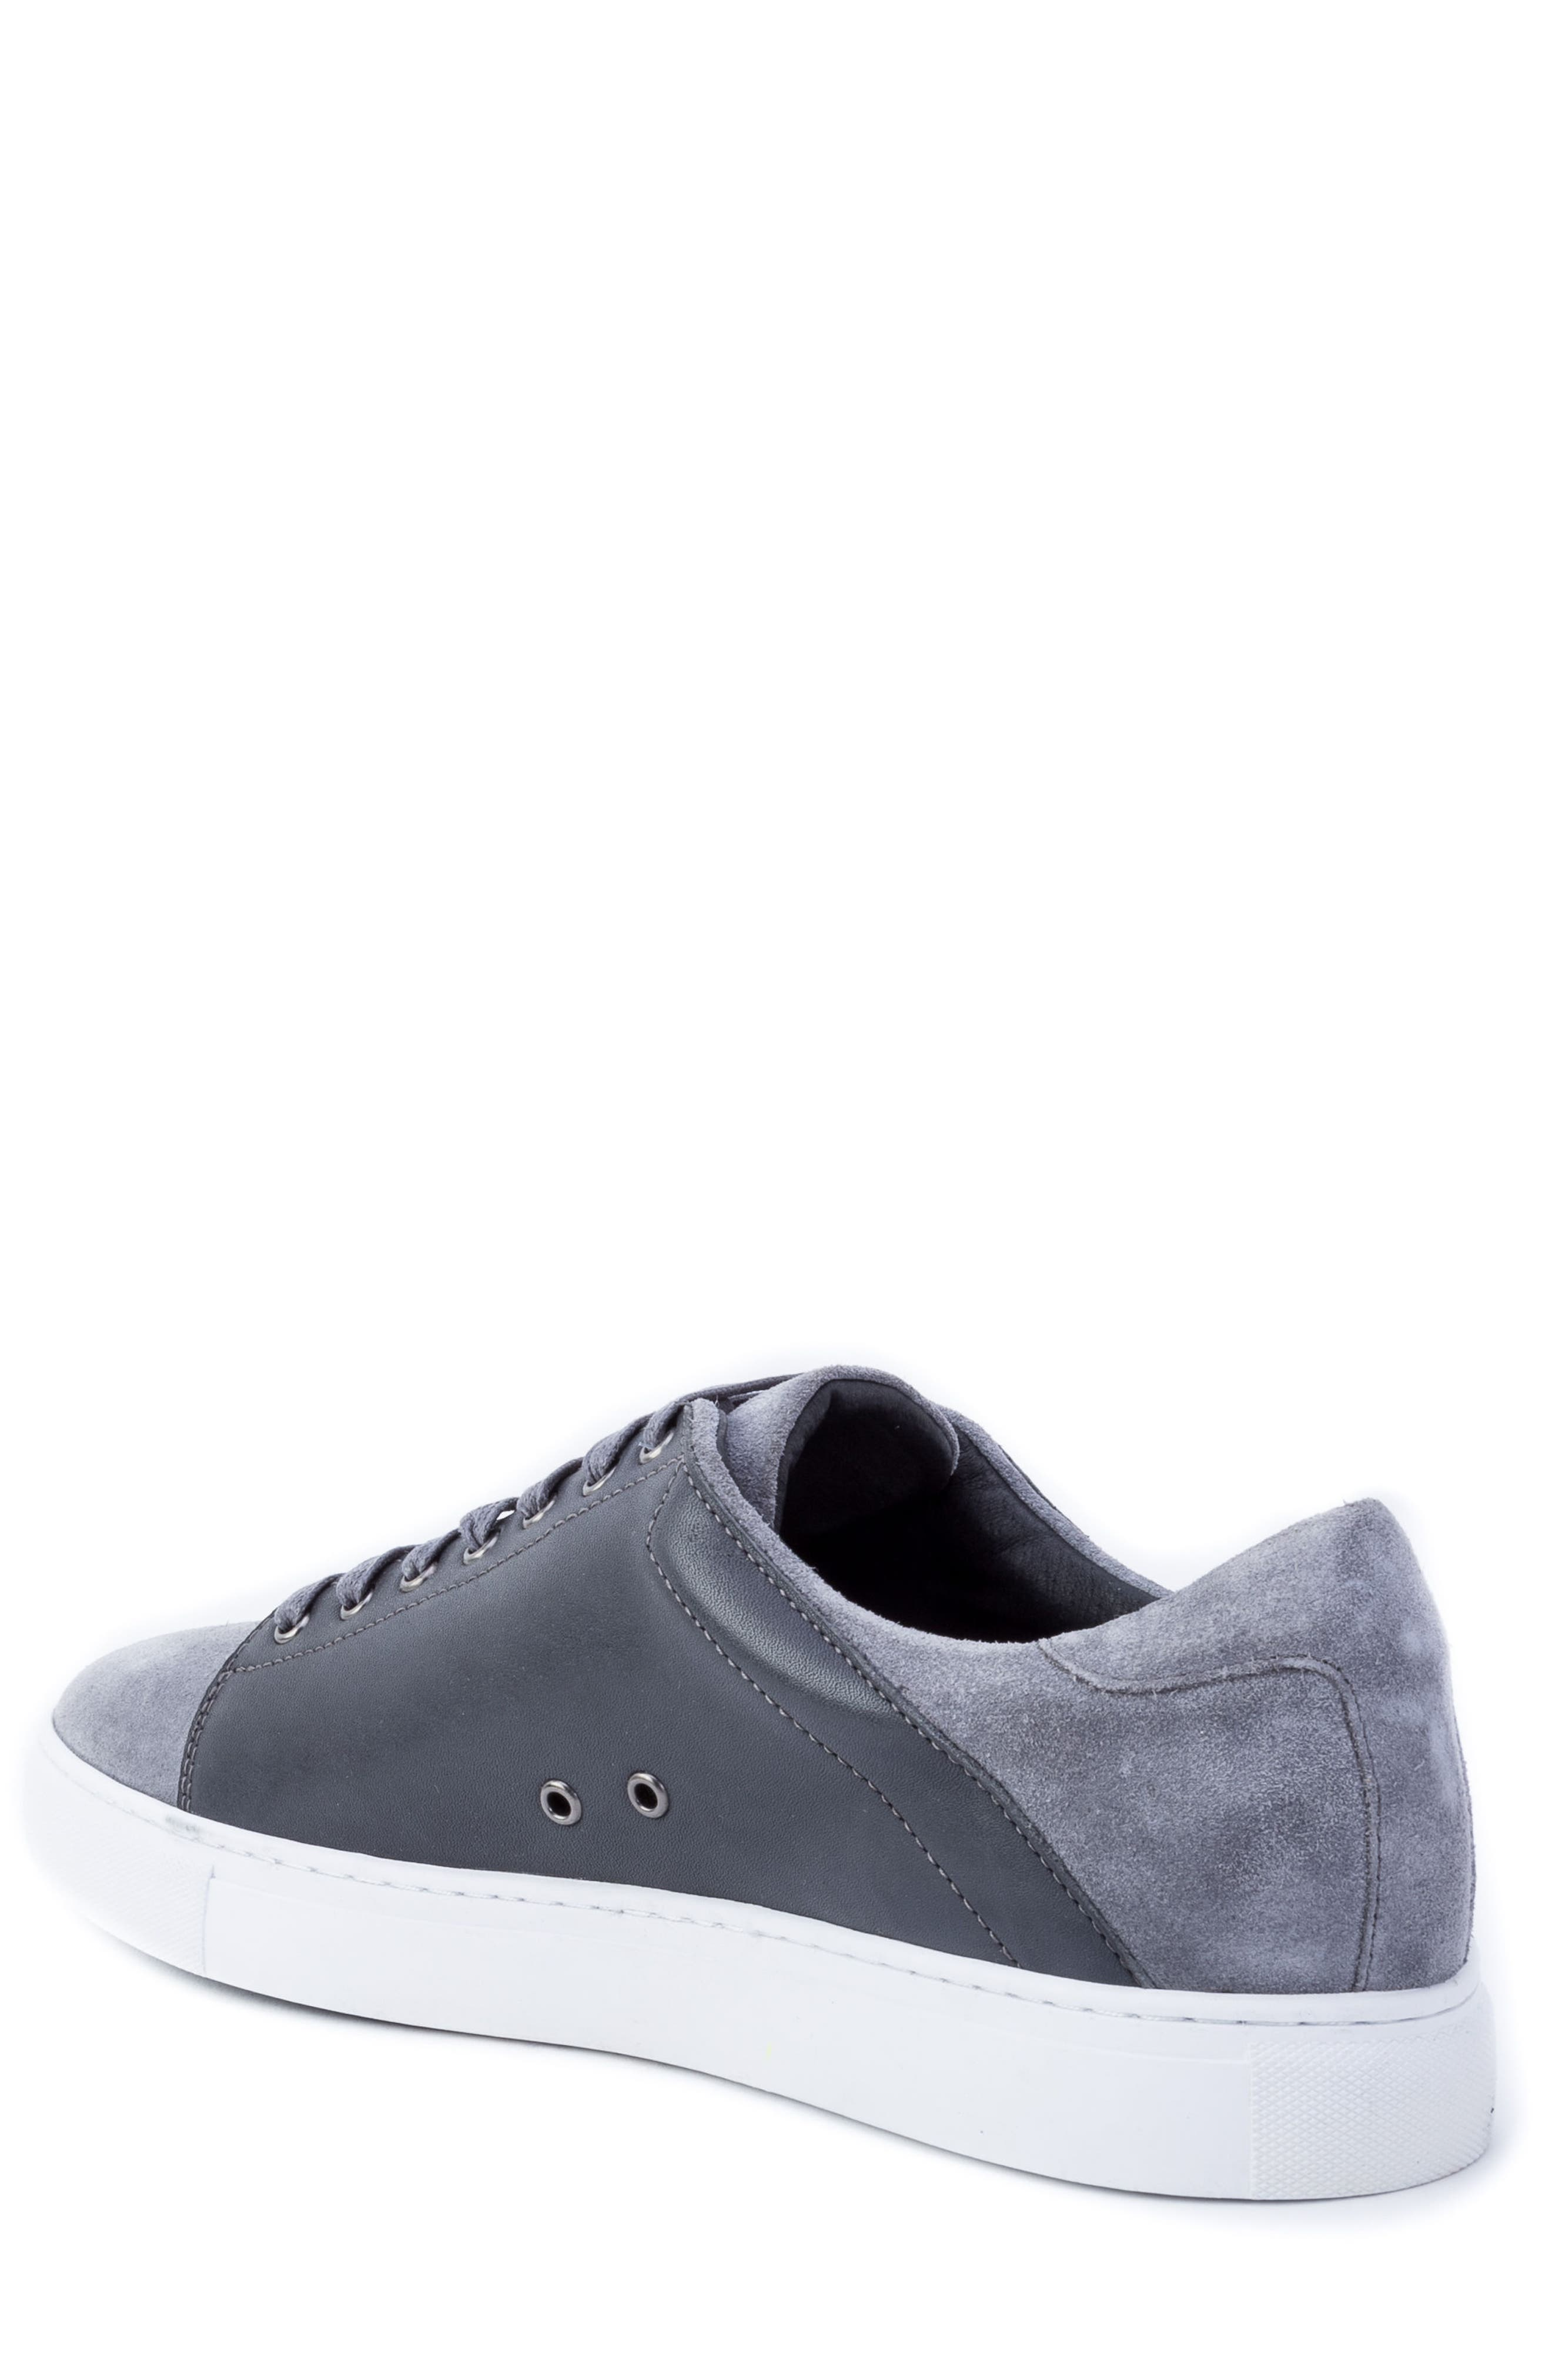 Record Low Top Sneaker,                             Alternate thumbnail 2, color,                             Grey Suede/ Leather